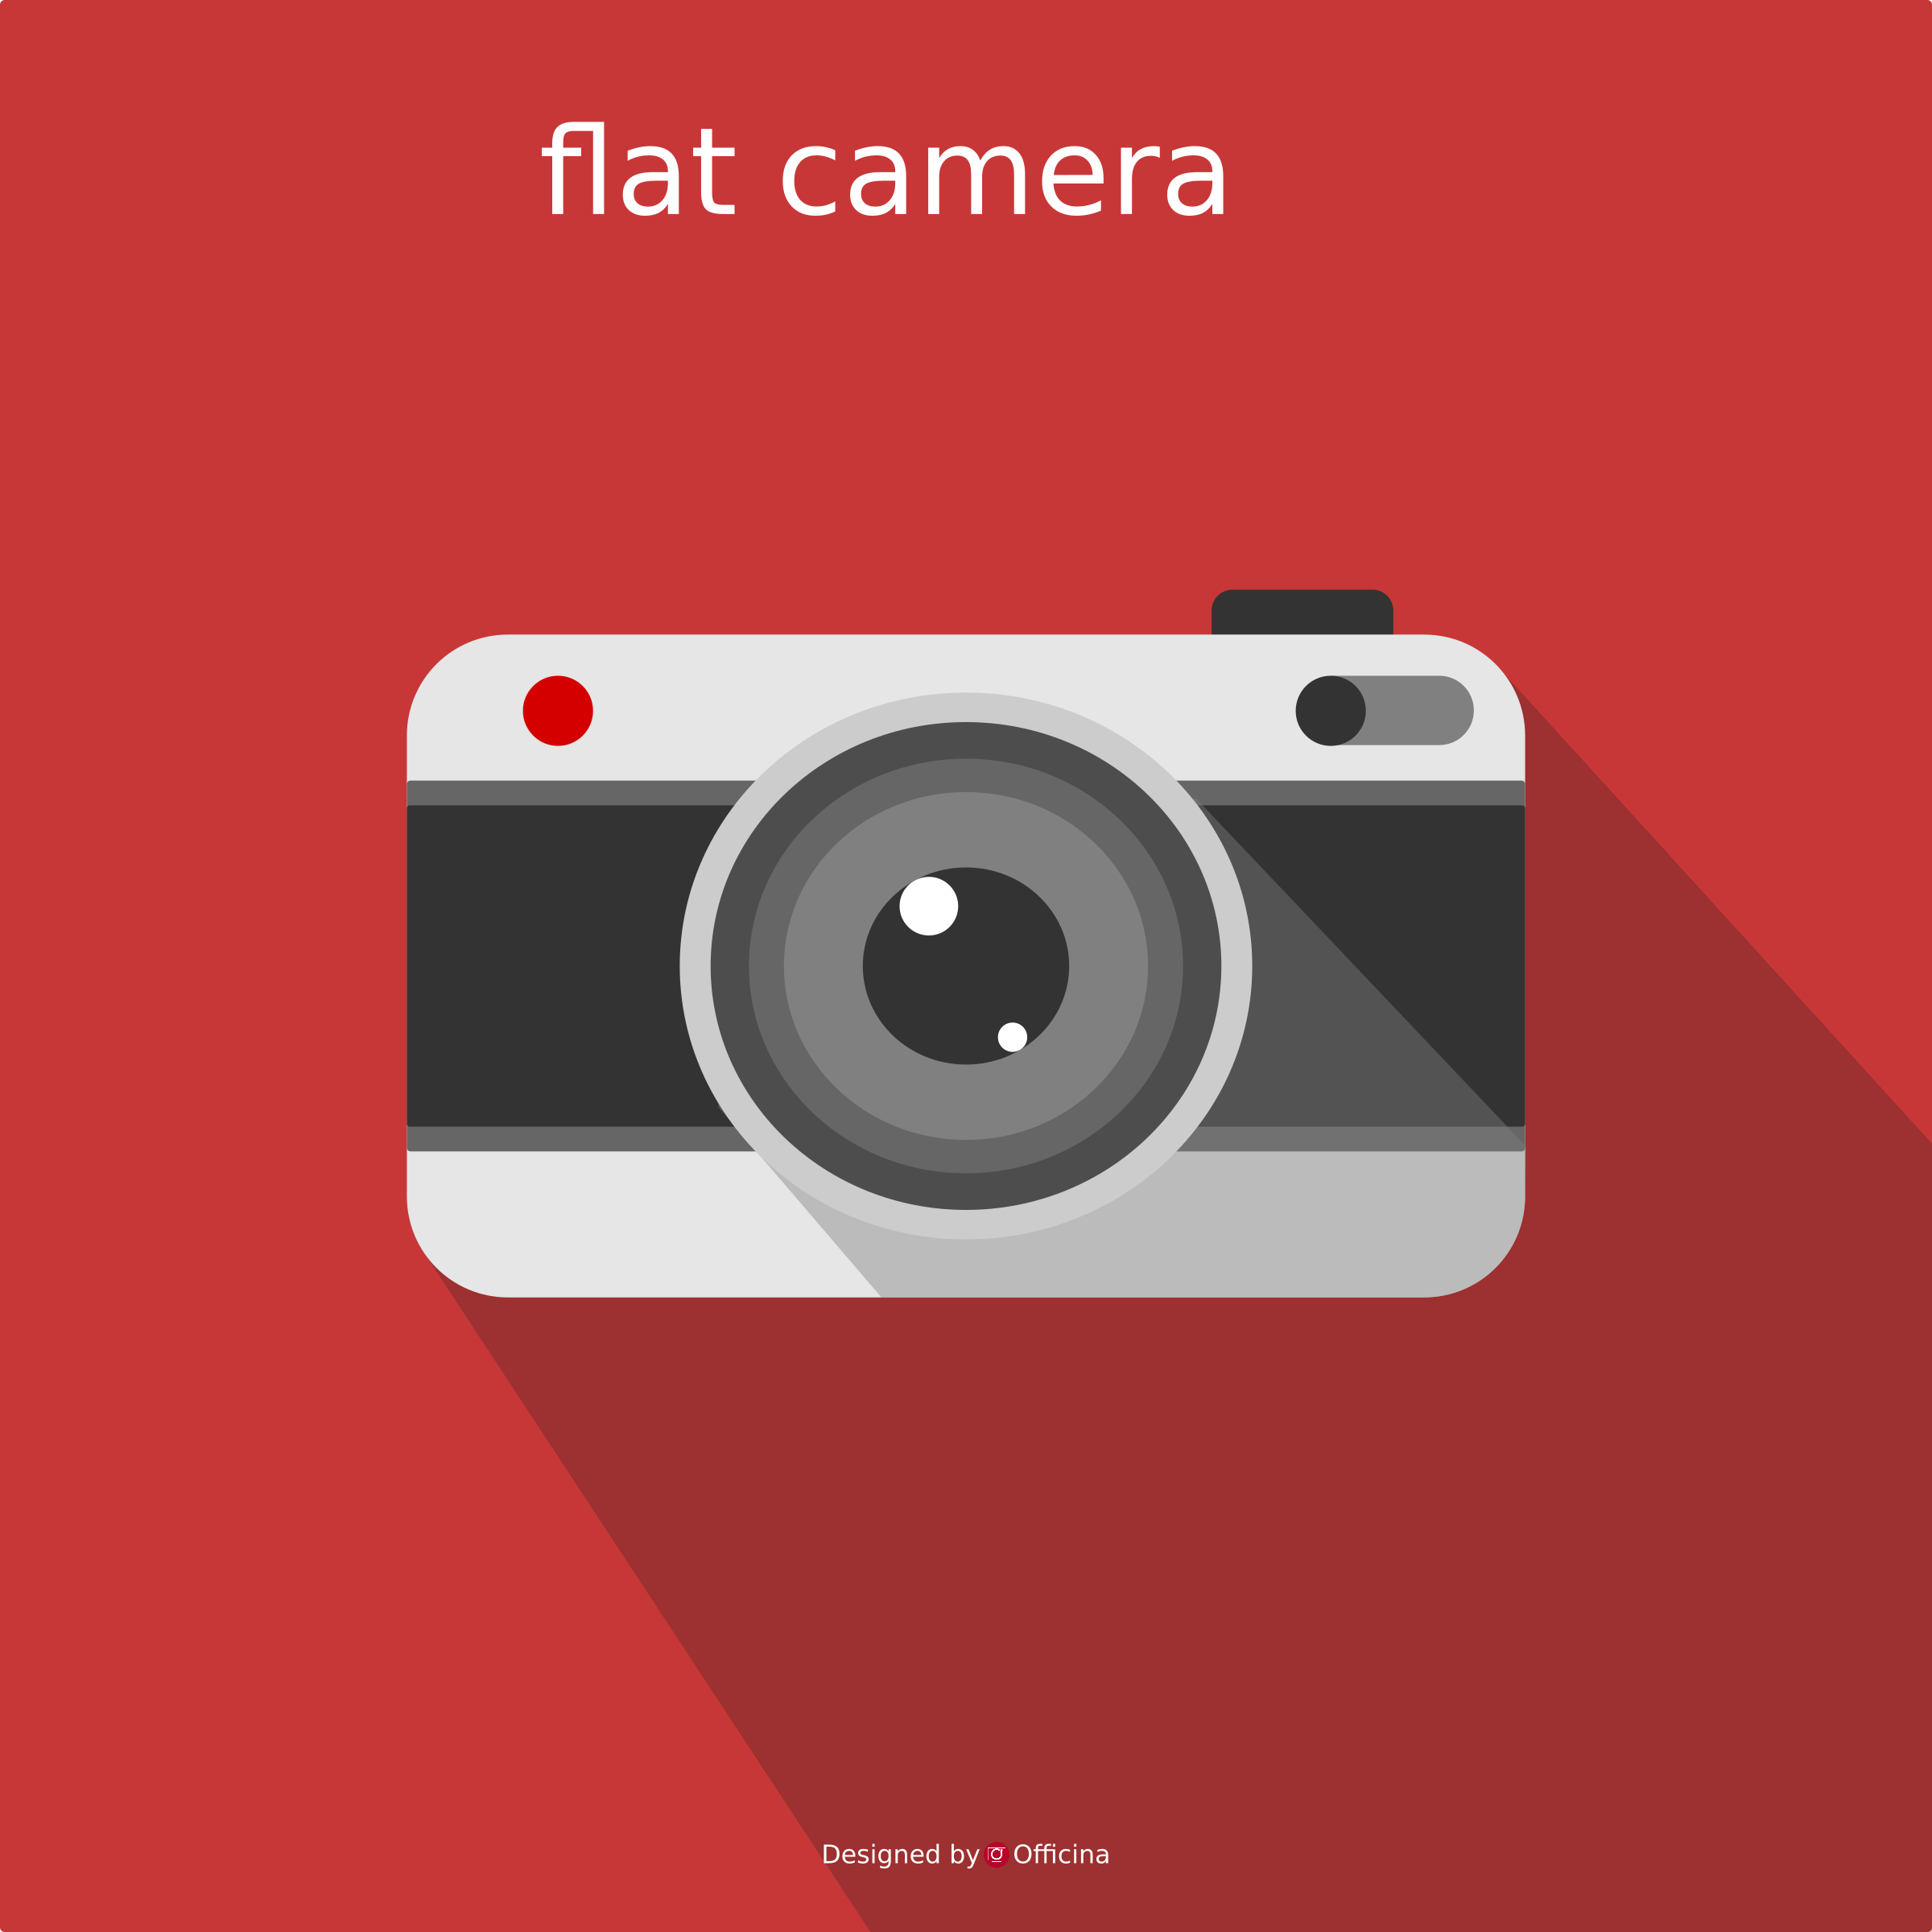 Flat camera by Officina